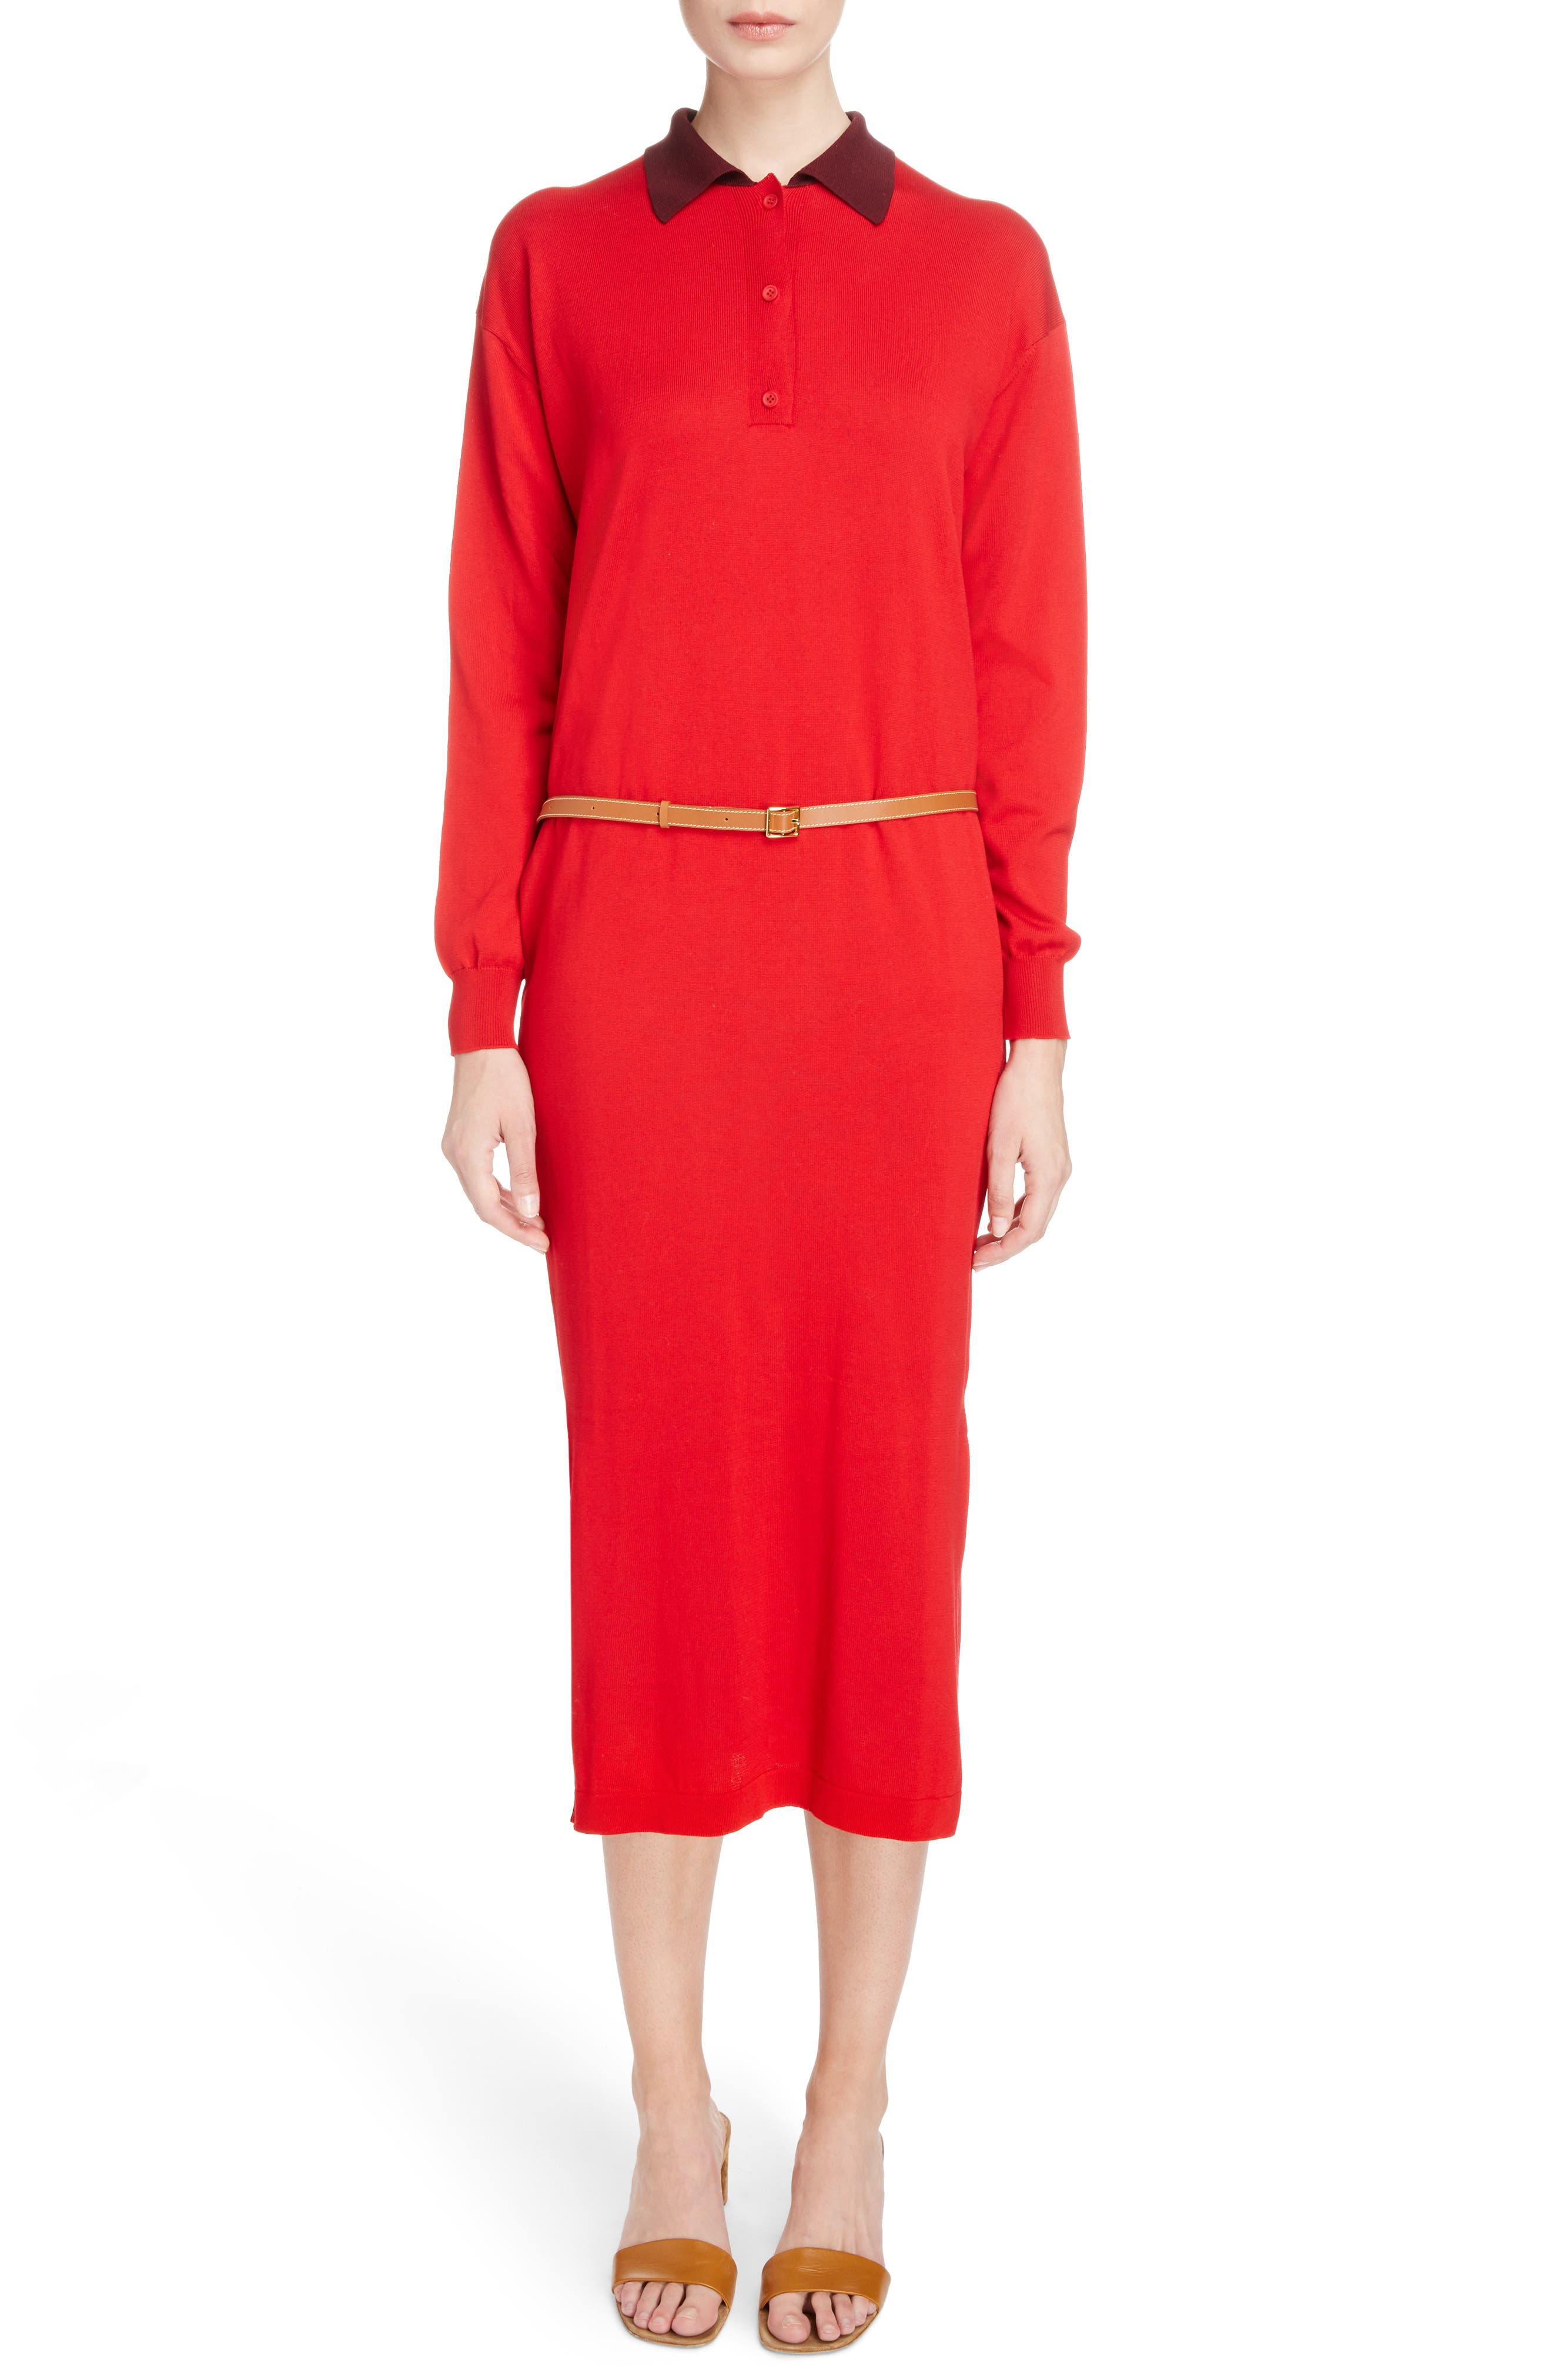 Belted Polo Dress,                         Main,                         color, Red/ Burgundy